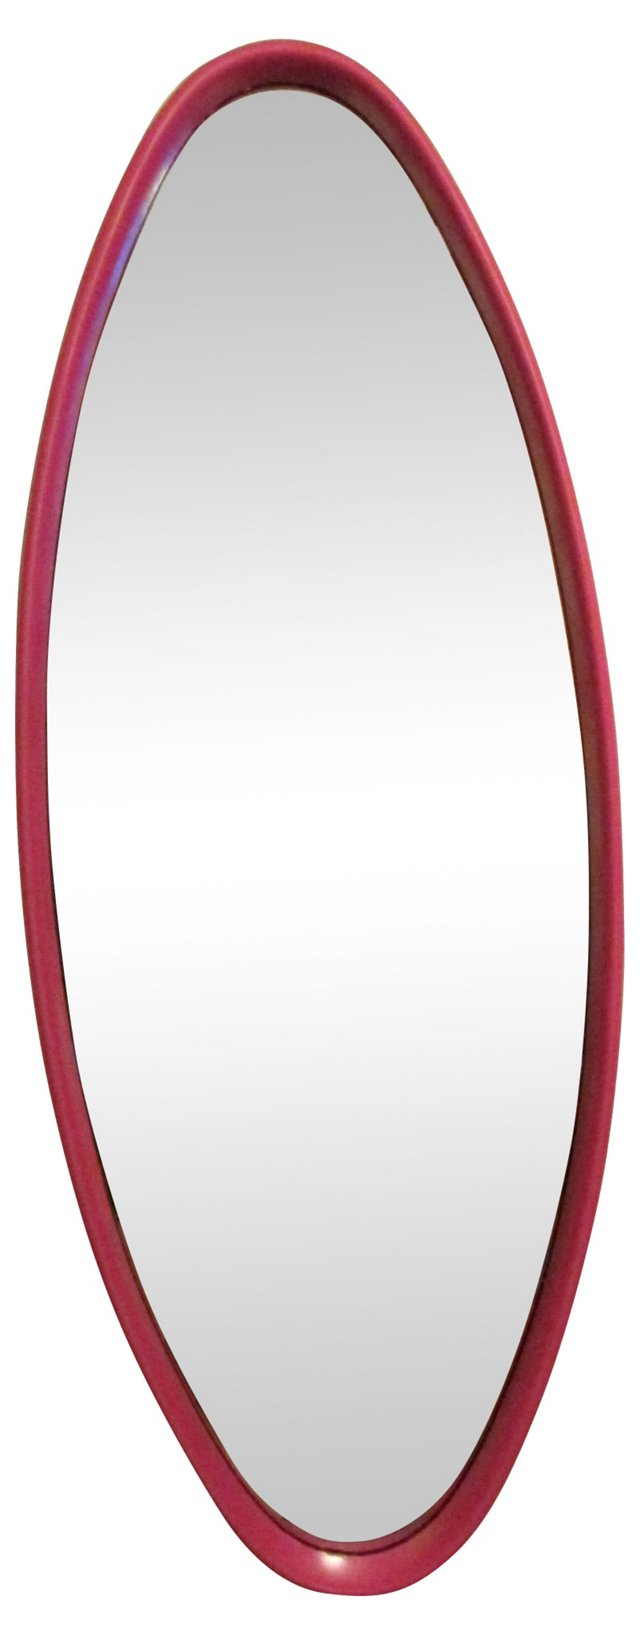 Pink Oval Mirror